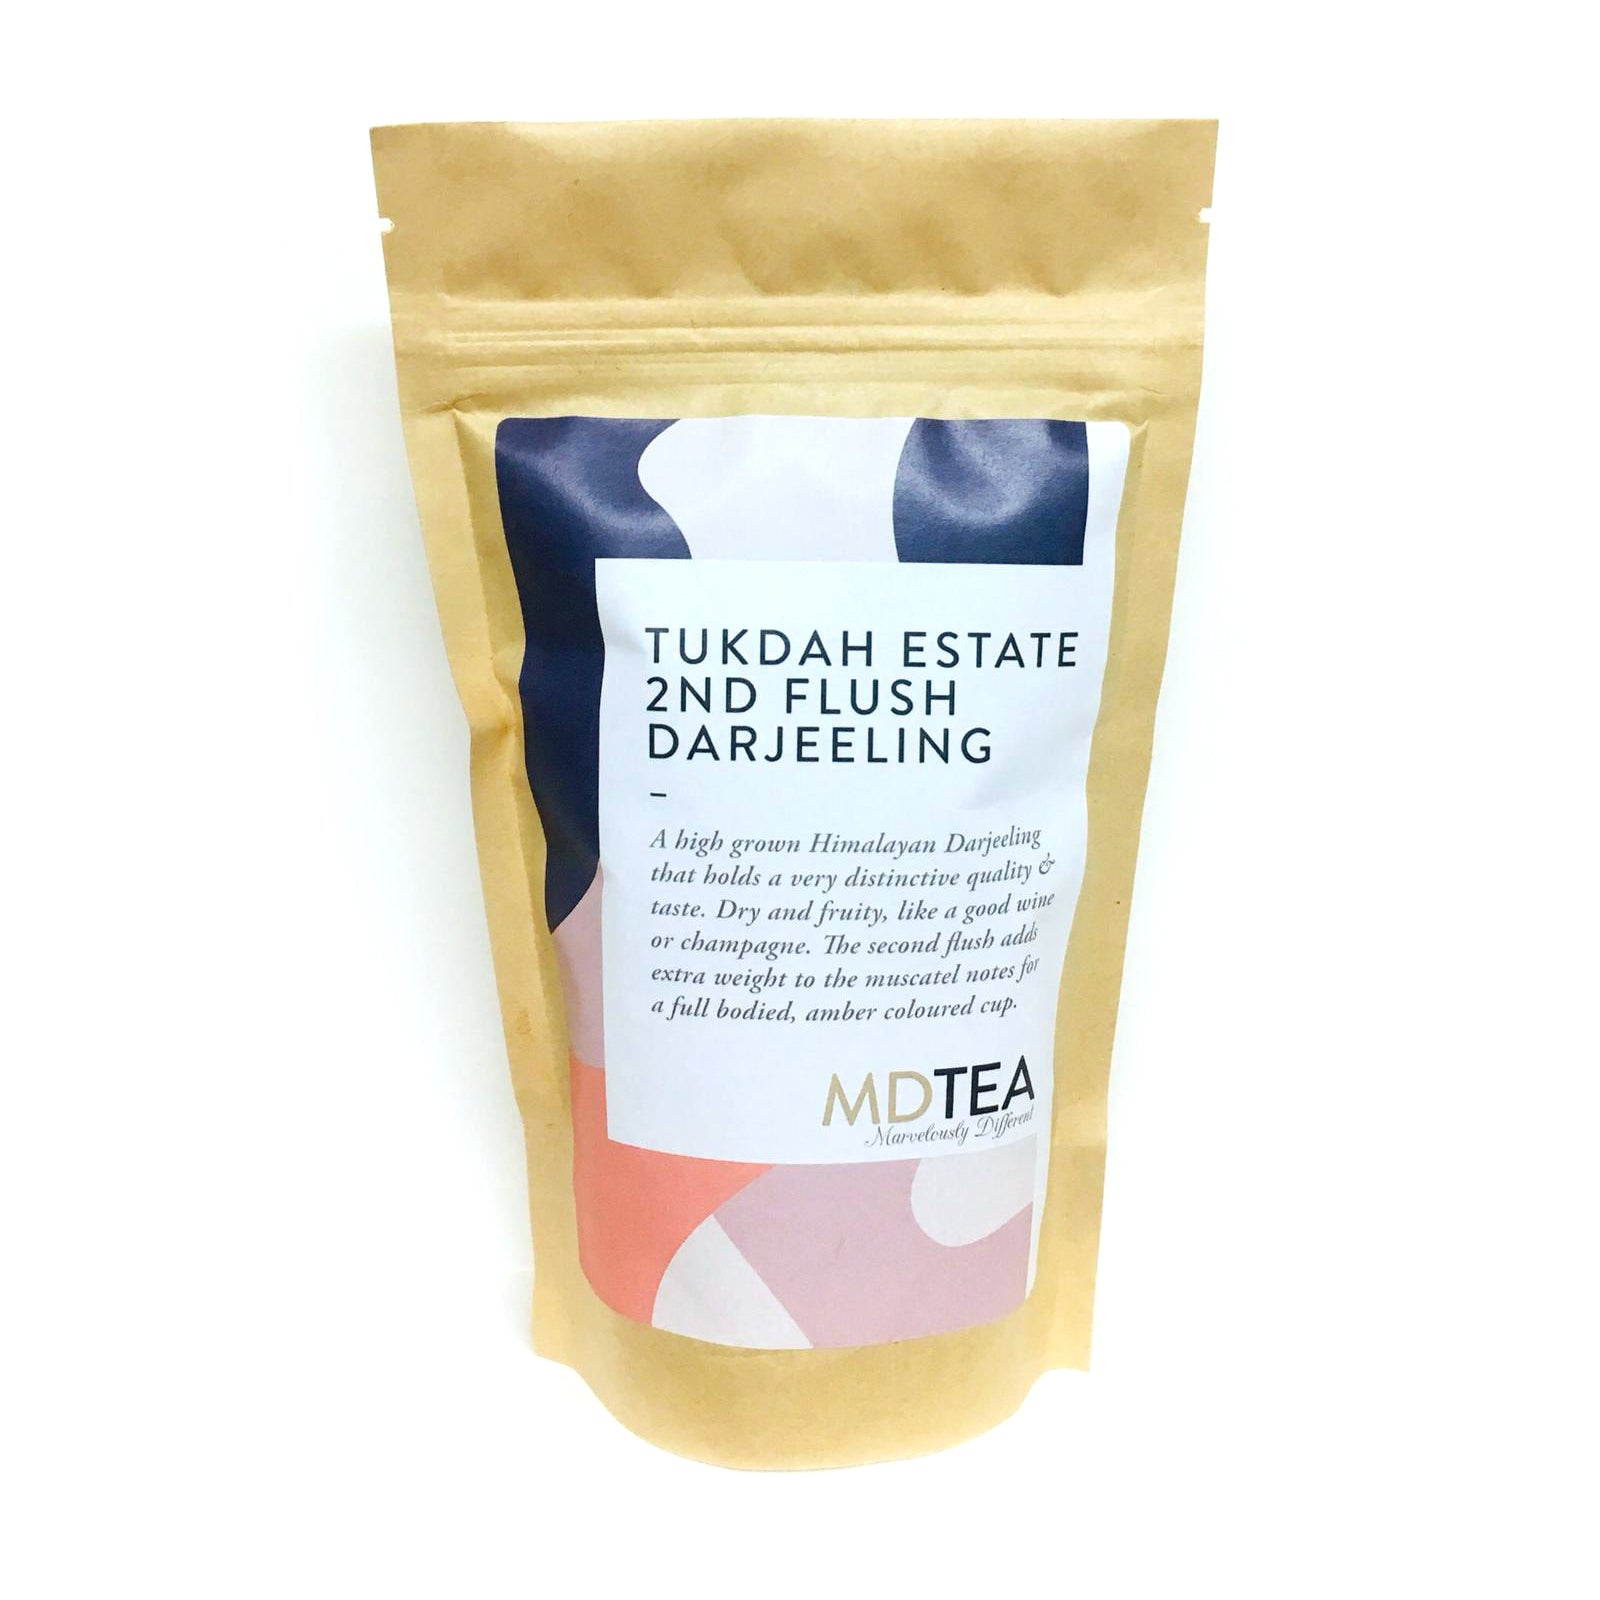 Tukdah Estate 2nd Flush Darjeeling Tea